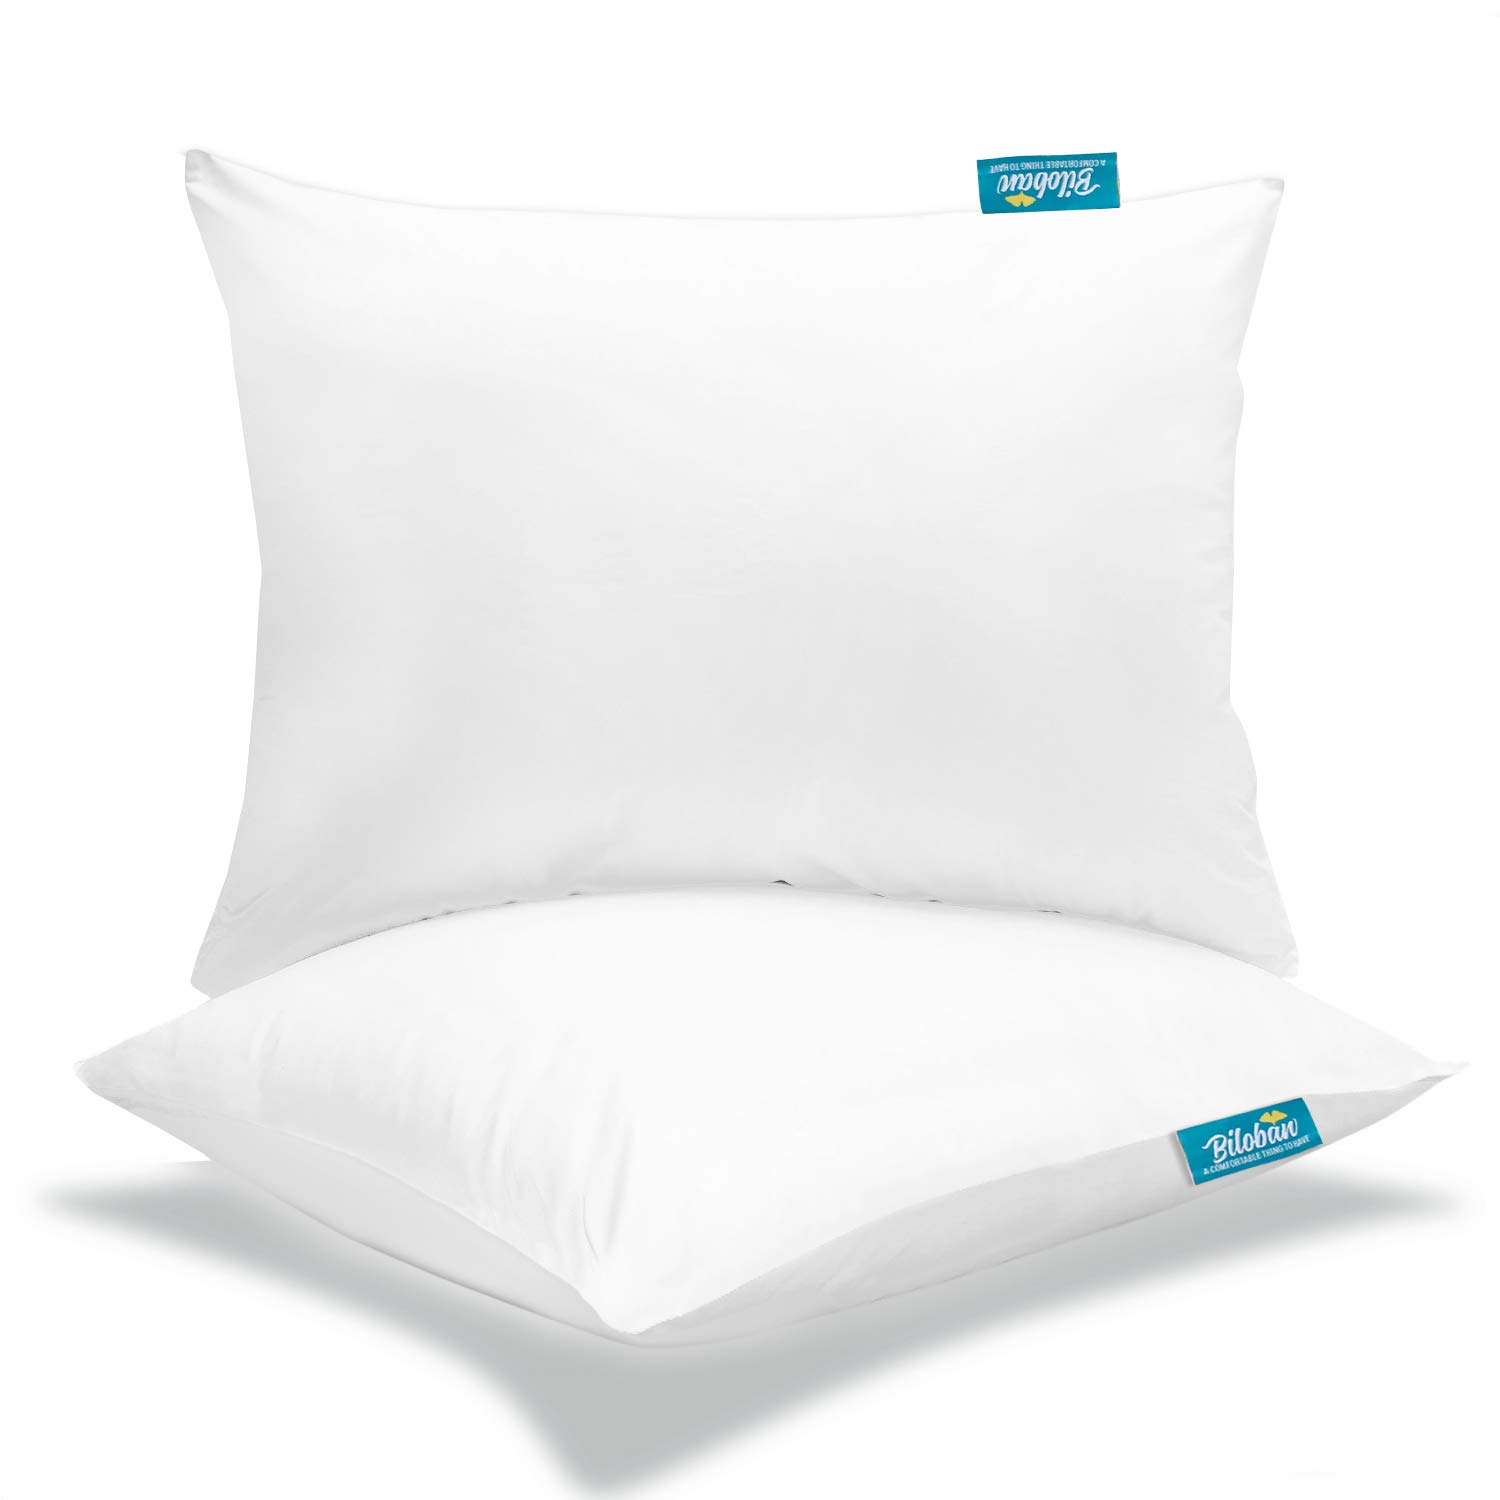 Toddler Pillow with Pillowcase 2 Pack, Kids Pillow for Sleeping with Comfortable and Soft Pillowcase for Travel, Crib and Toddler Bed - White by Biloban